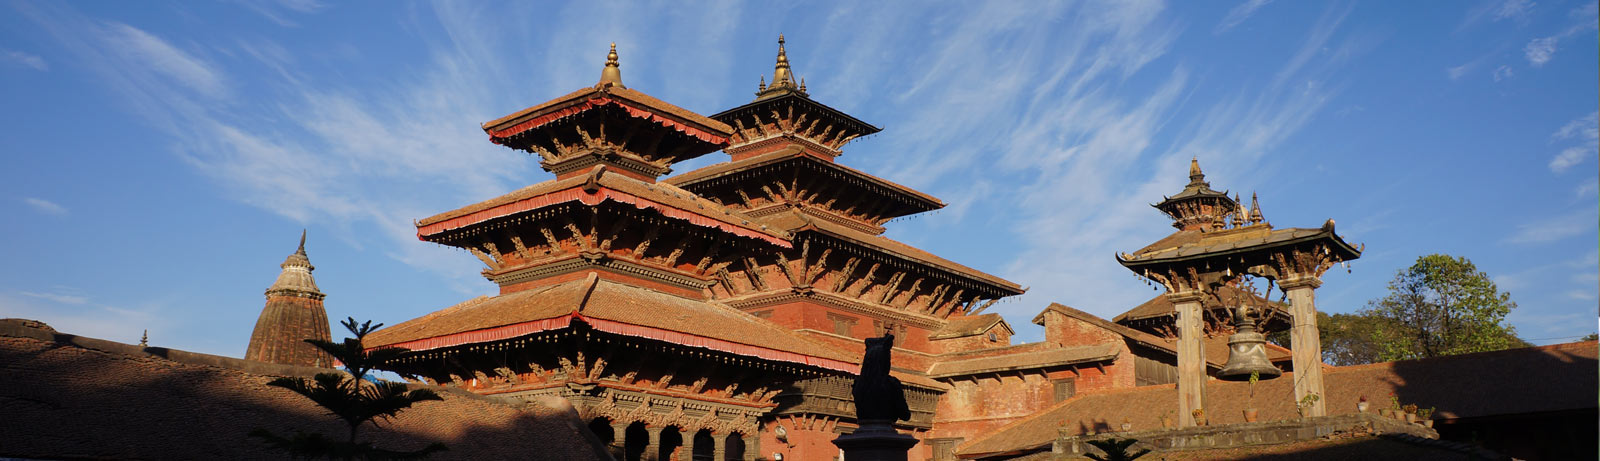 >1 Day tour to Patan